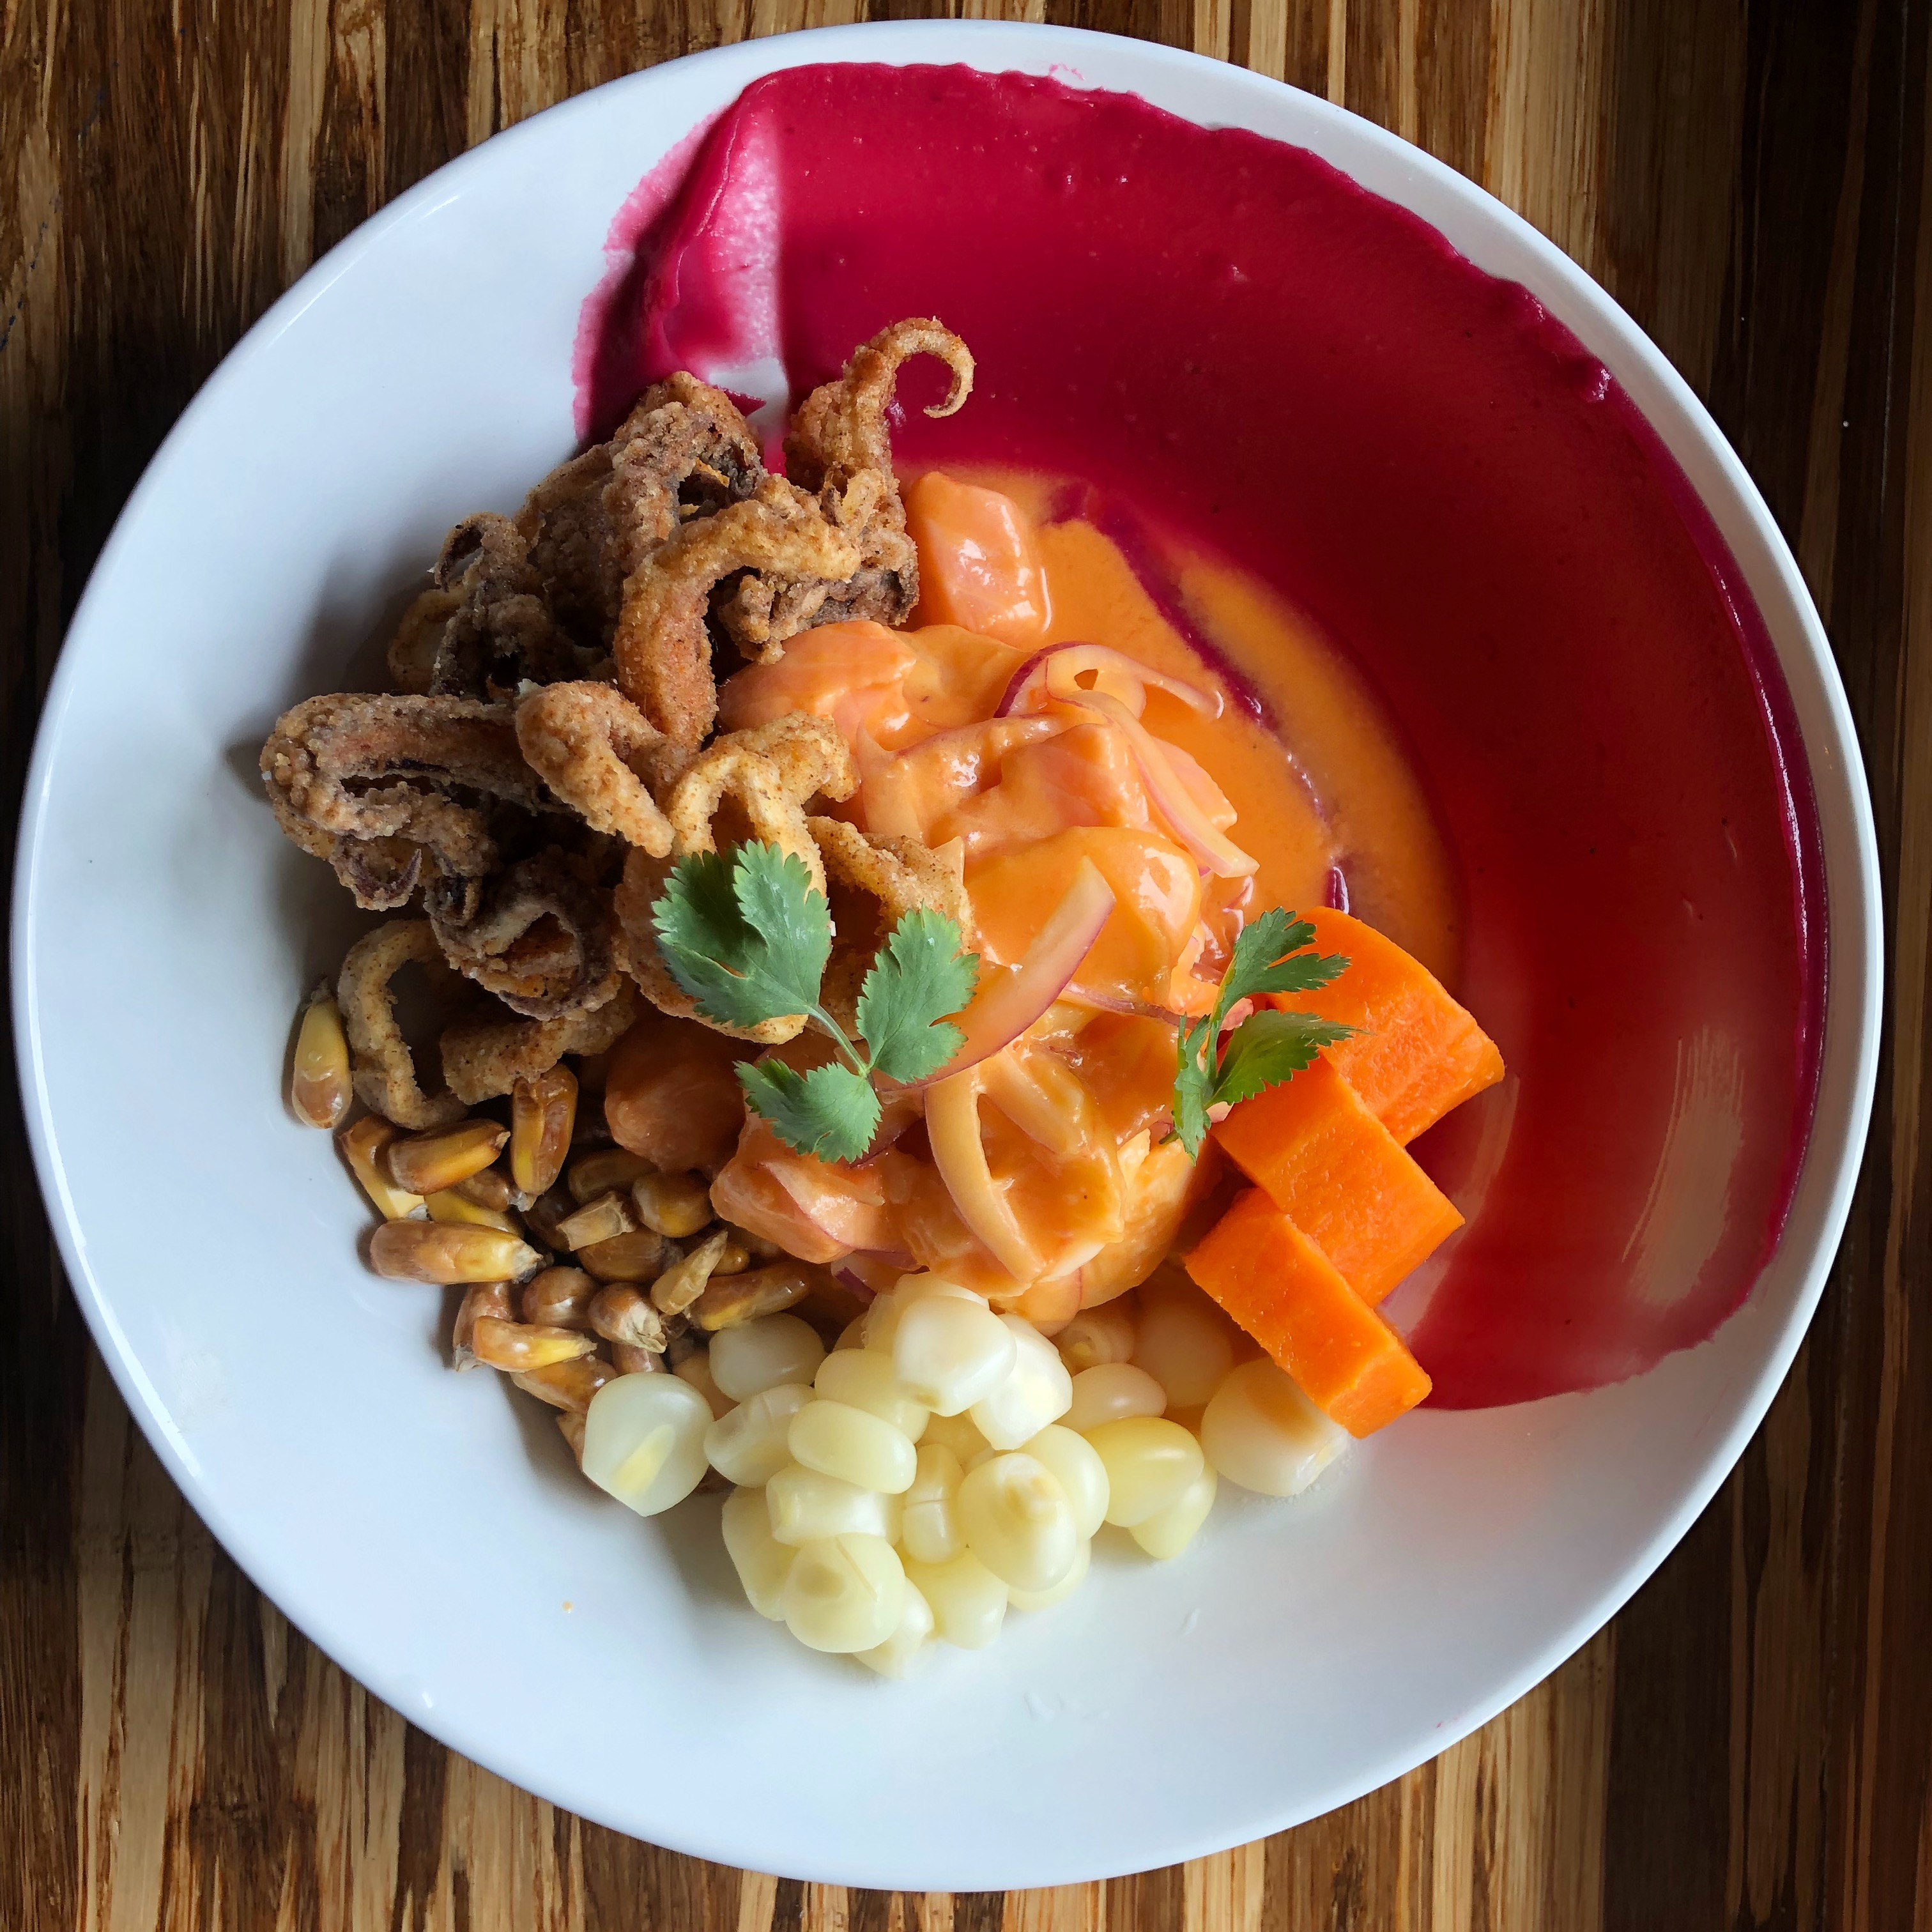 A bowl of ceviche with hunks of raw fish, sweet potato, corn, and just a touch of fried calamari